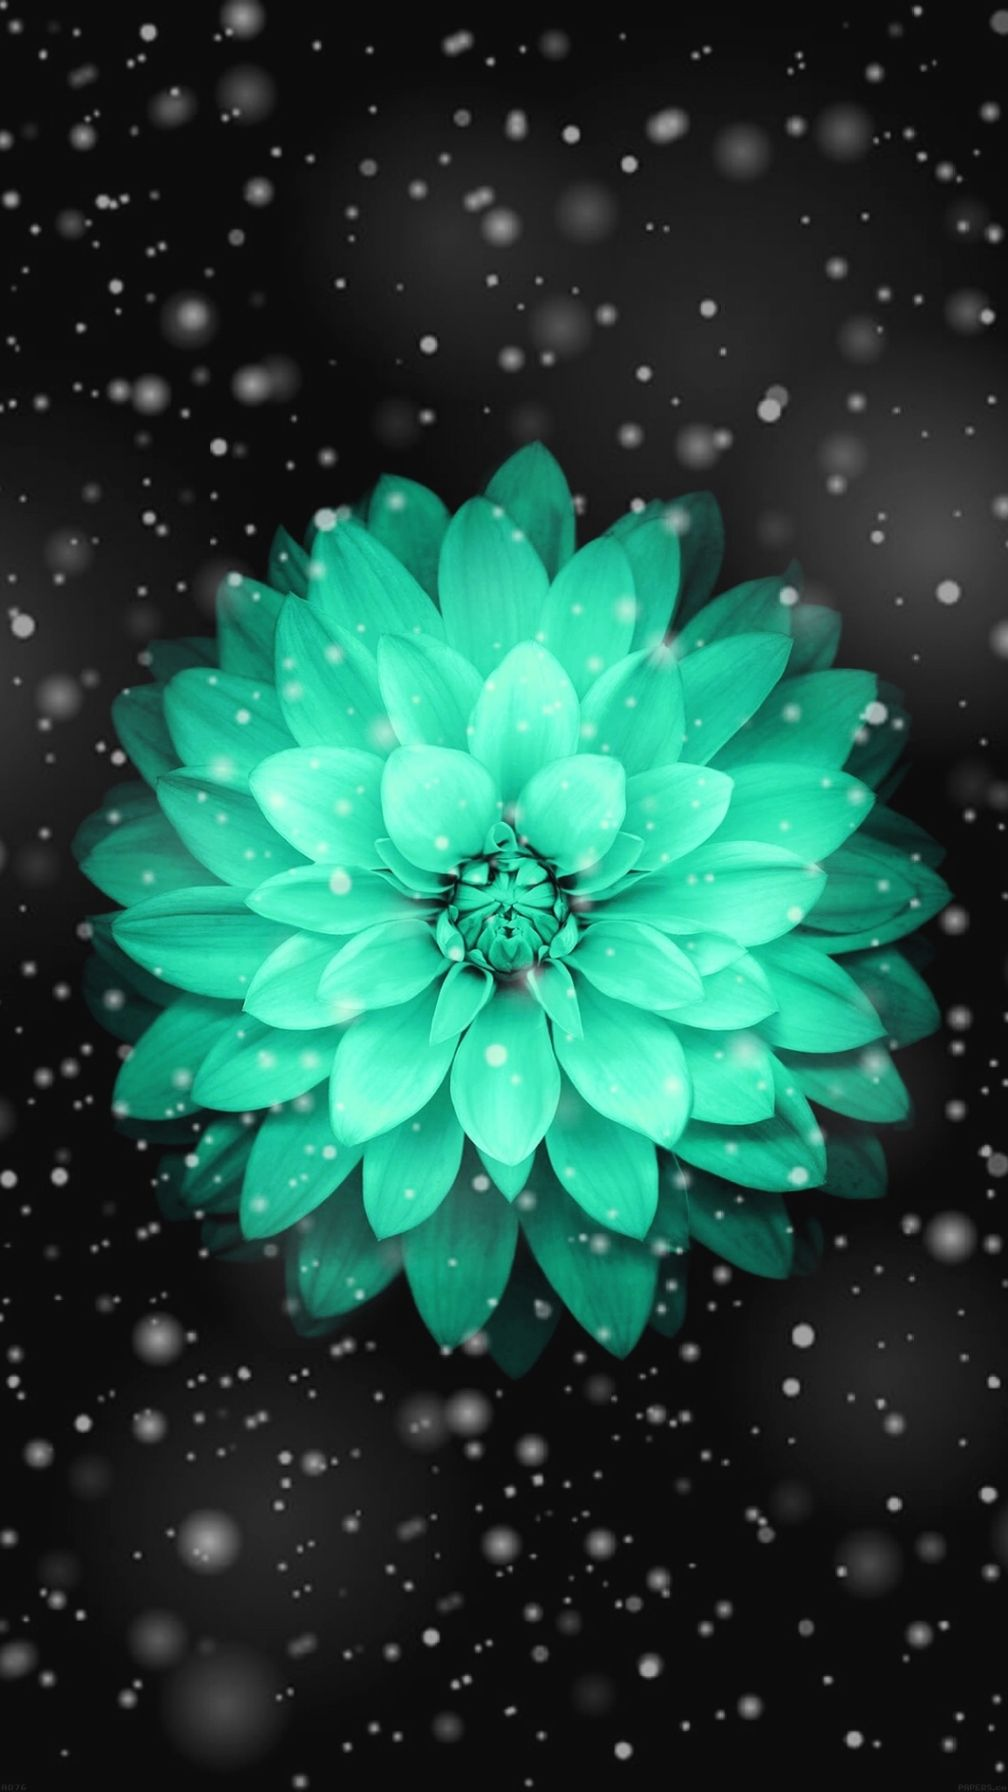 1000 Ideas About Cute Wallpapers On Pinterest Iphone Wallpapers For Top 10 Best Iphone Wallp Teal Flower Wallpaper Flower Iphone Wallpaper Pretty Wallpapers